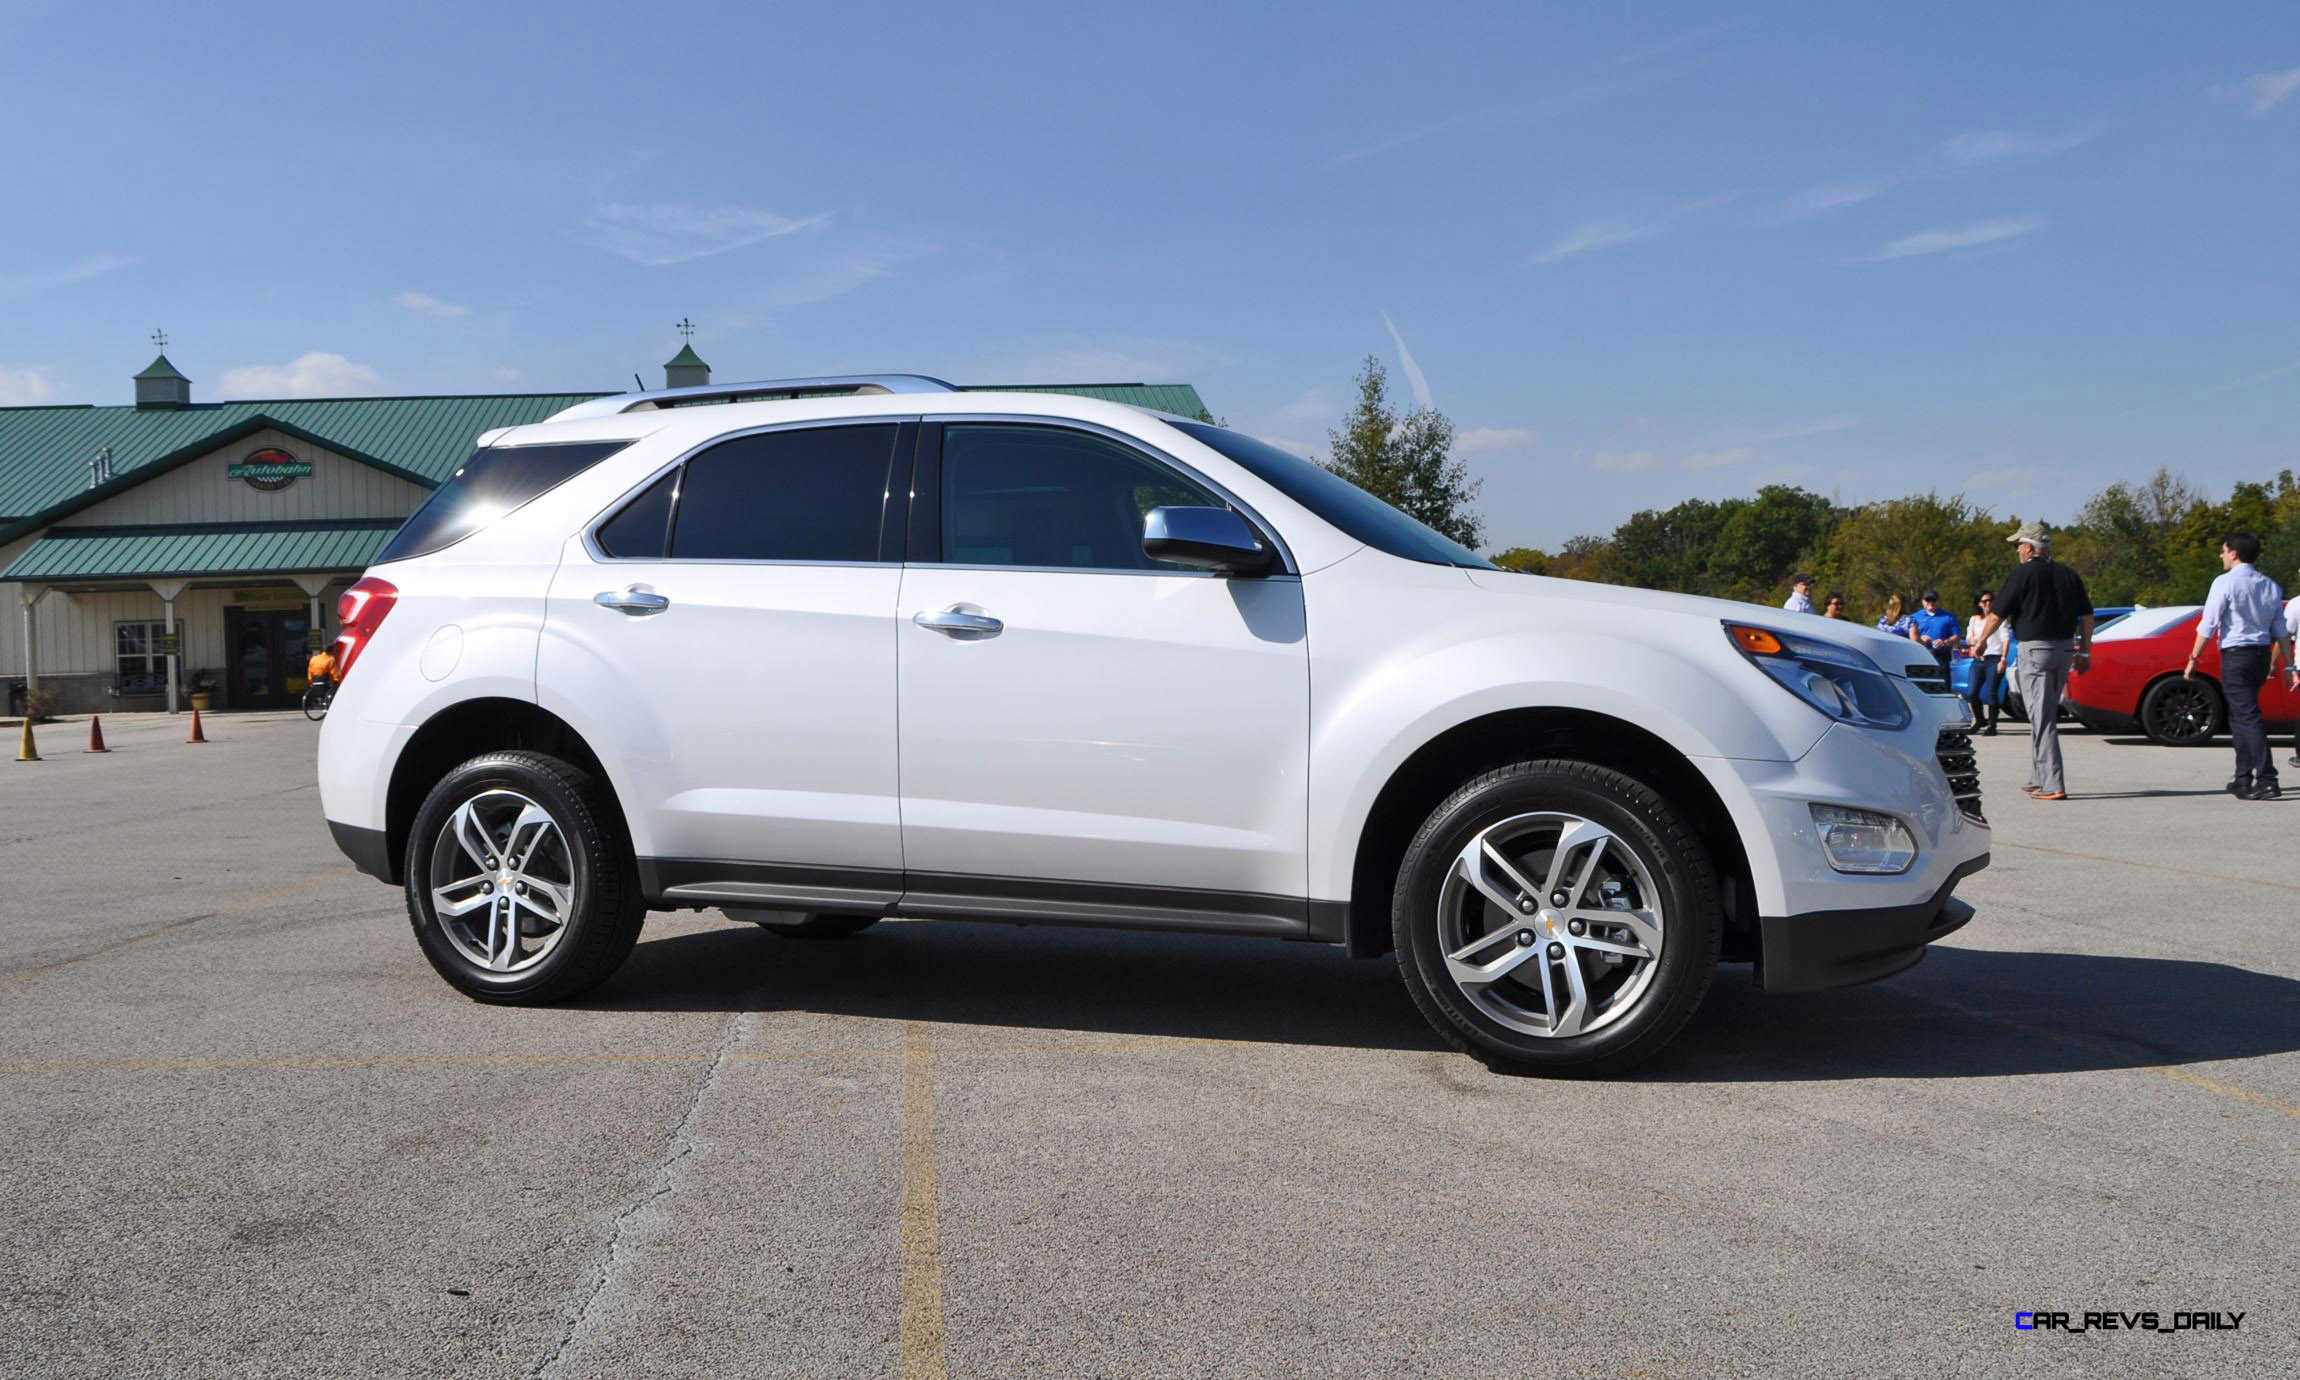 Used Cars Louisville Ky >> Equinox Suv Images | 2017, 2018, 2019 Ford Price, Release Date, Reviews